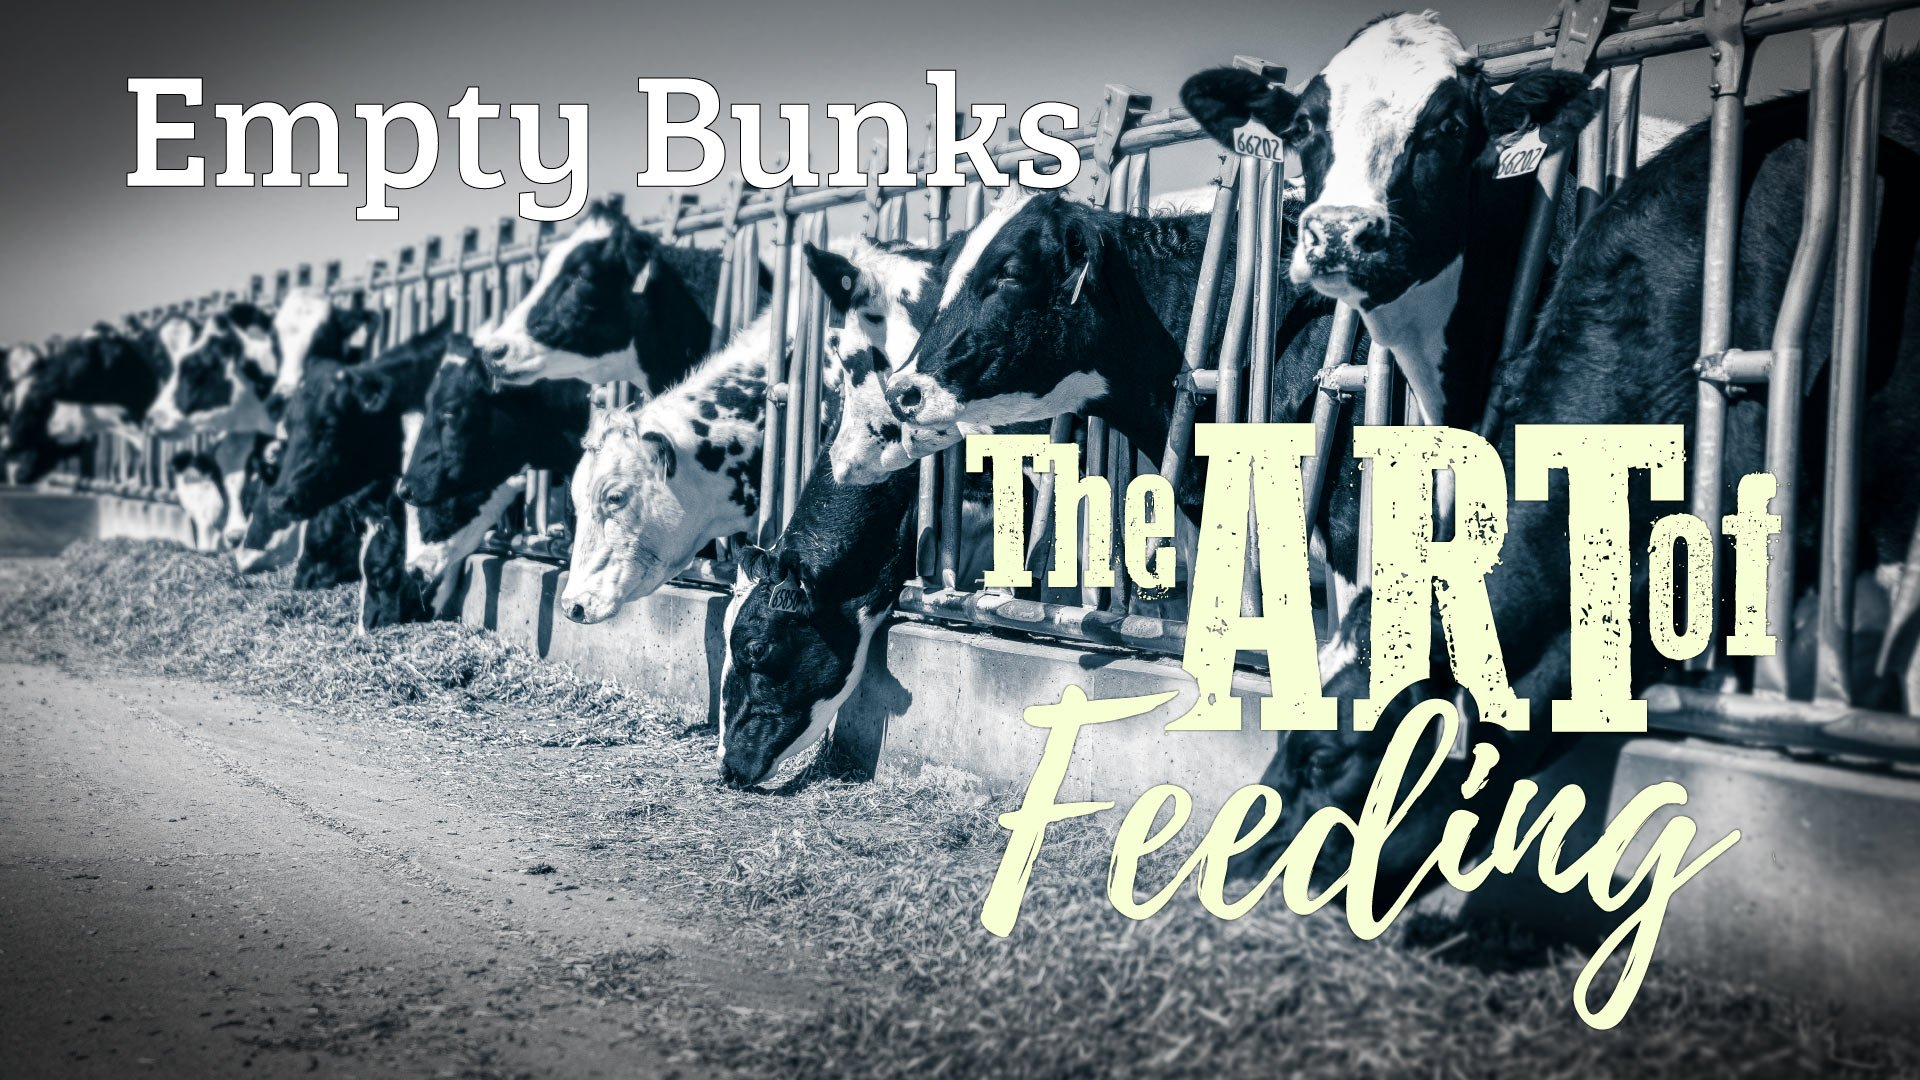 The Art of Feeding: Empty Bunks